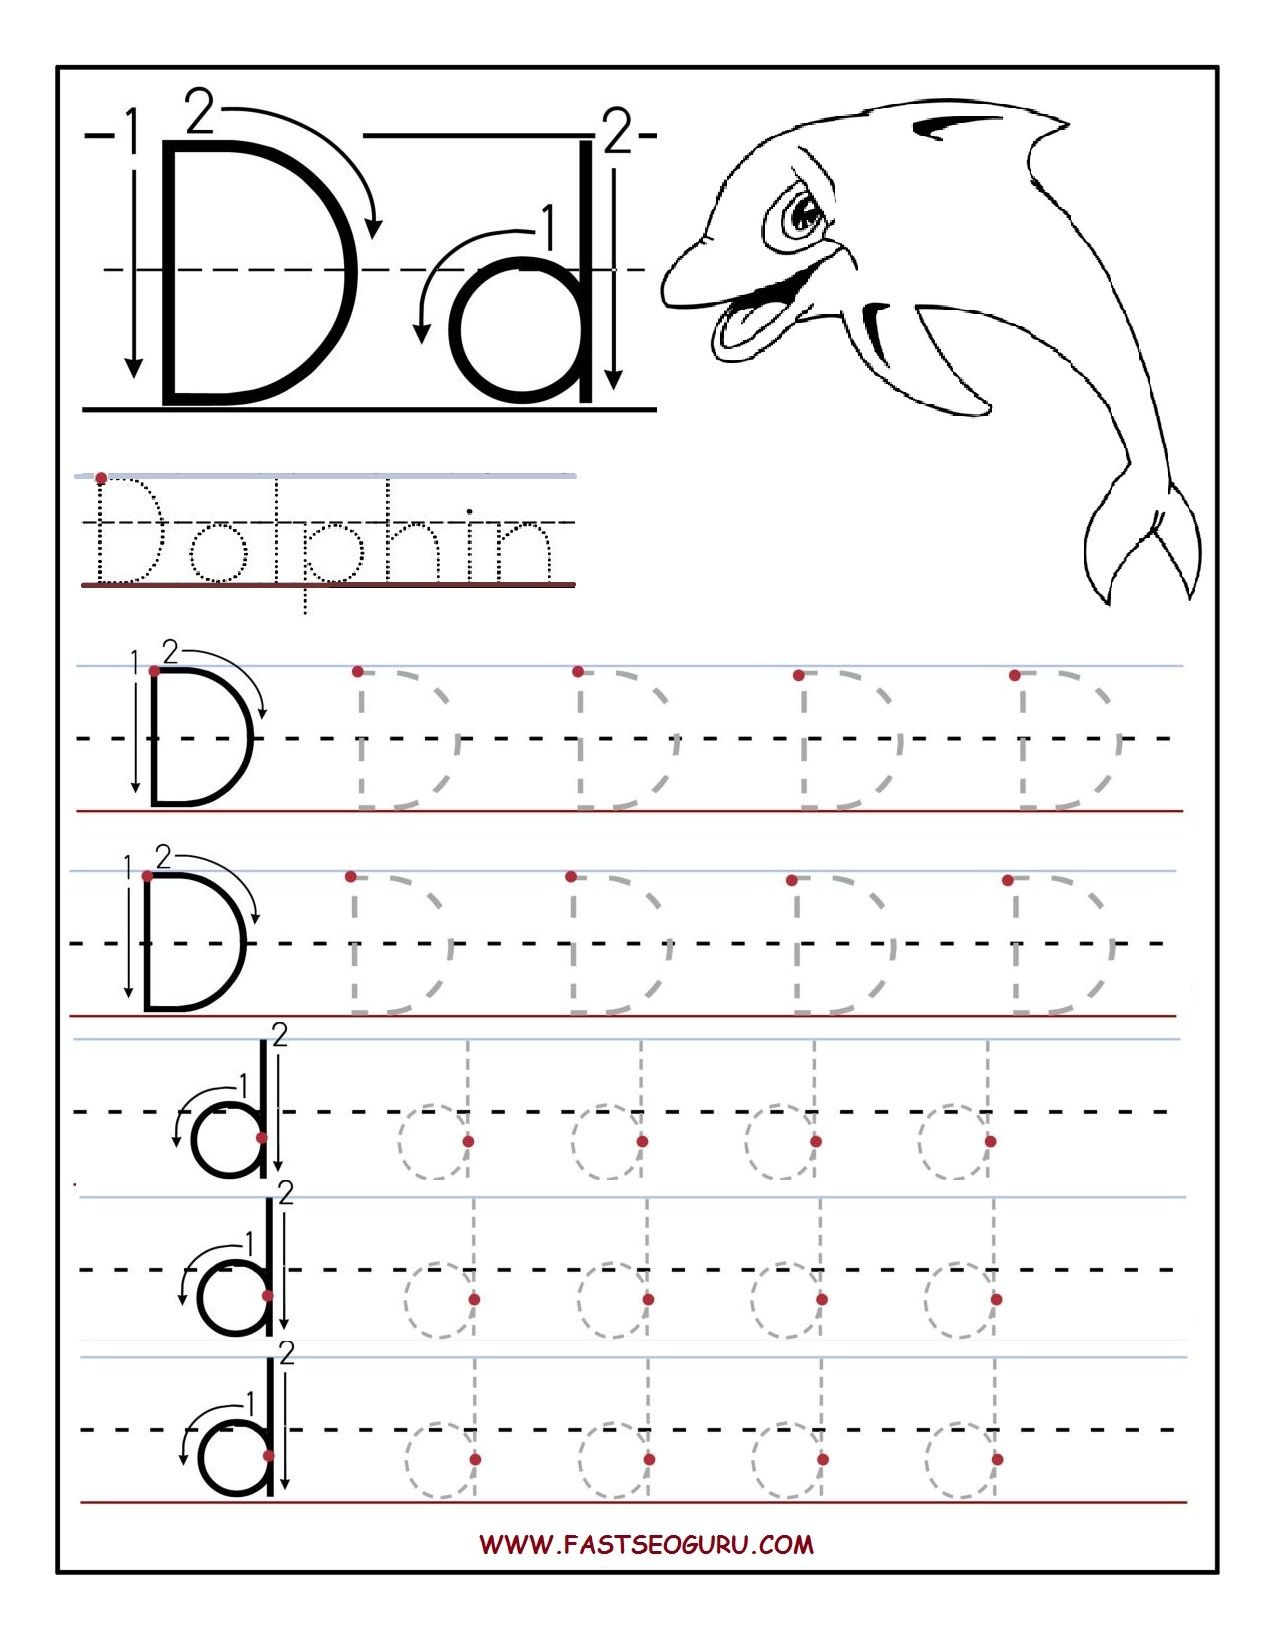 Printables Tracing Worksheets Printable 1000 images about worksheets on pinterest alphabet letters number and alphabet